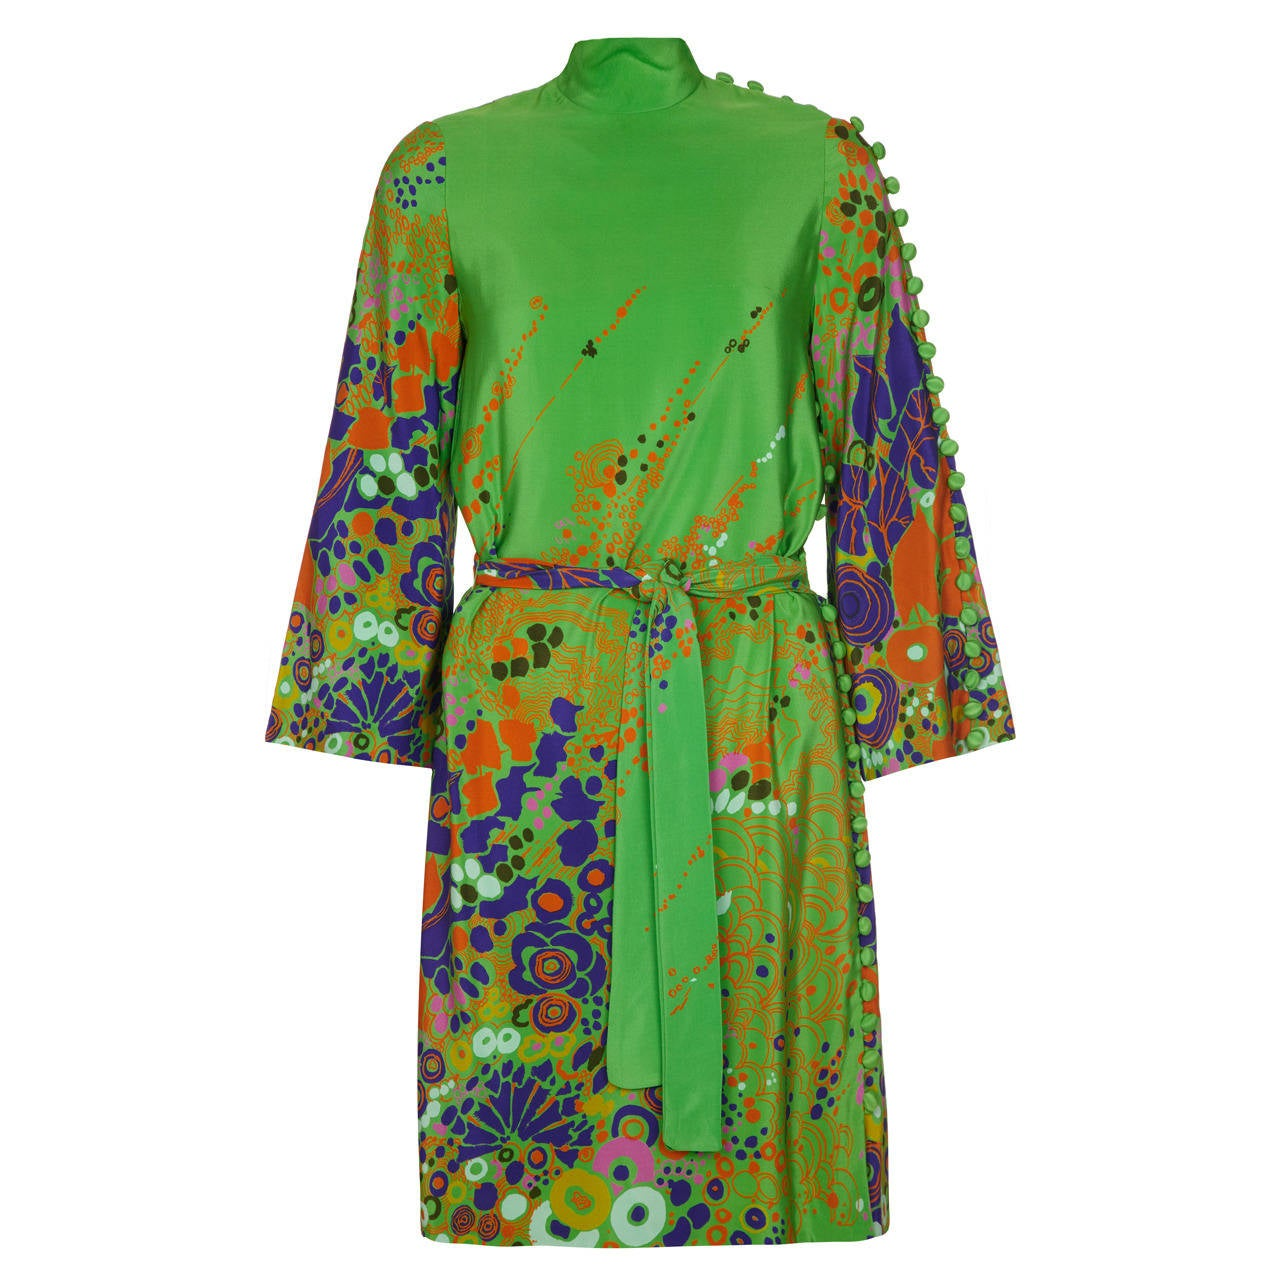 1960s Floral Print Green Dress With Button Detail For Sale